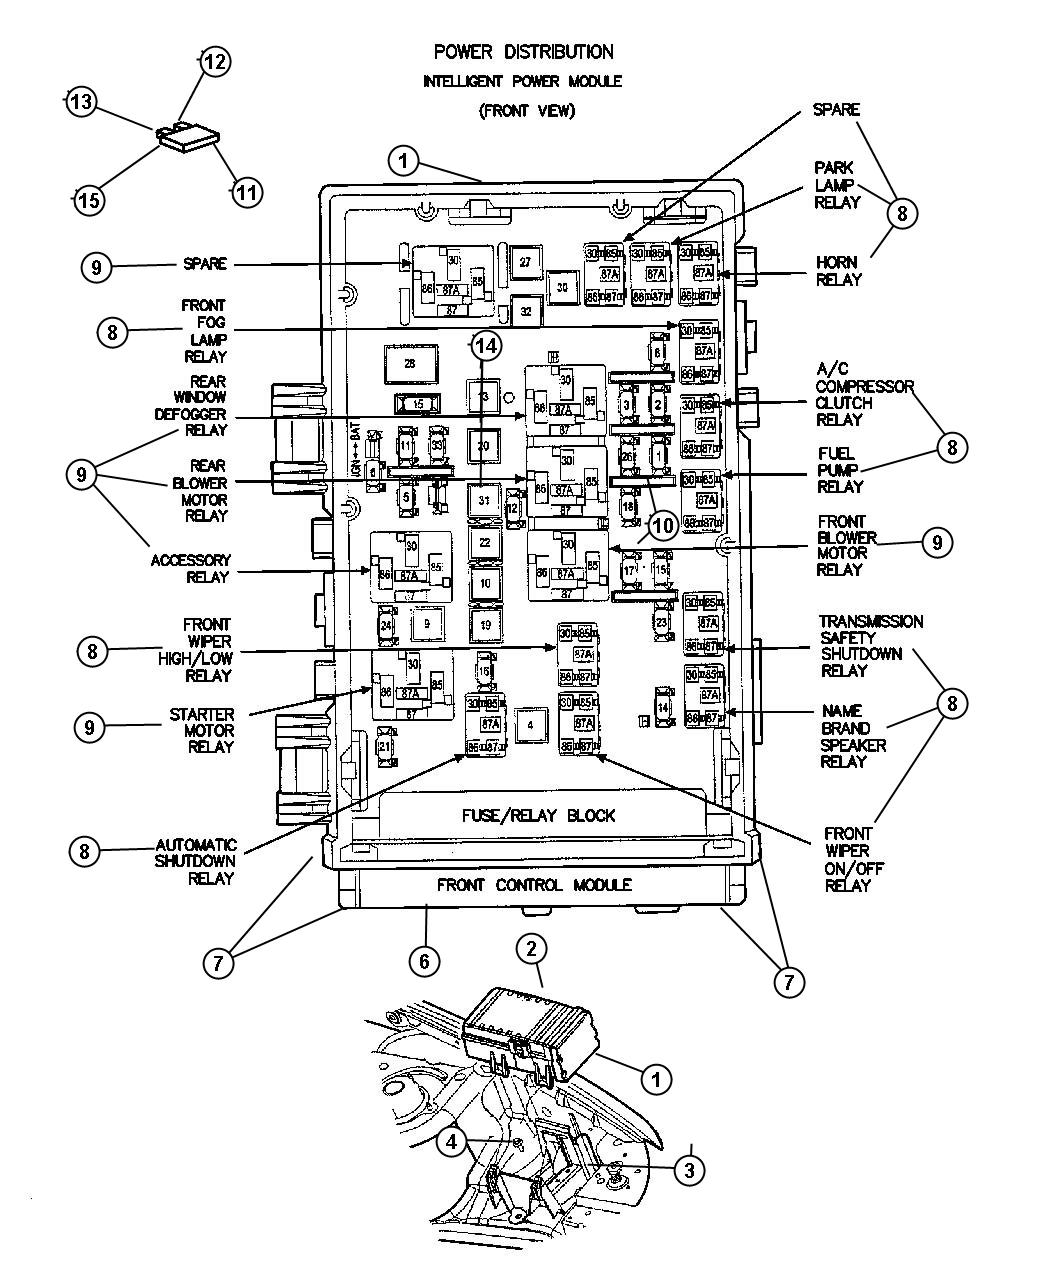 Chrysler Grand Voyager 2002 Fuse Box Location Wiring Library 02 Lesabre 2001 Panel Diagram Free 2000 Buick Dodge